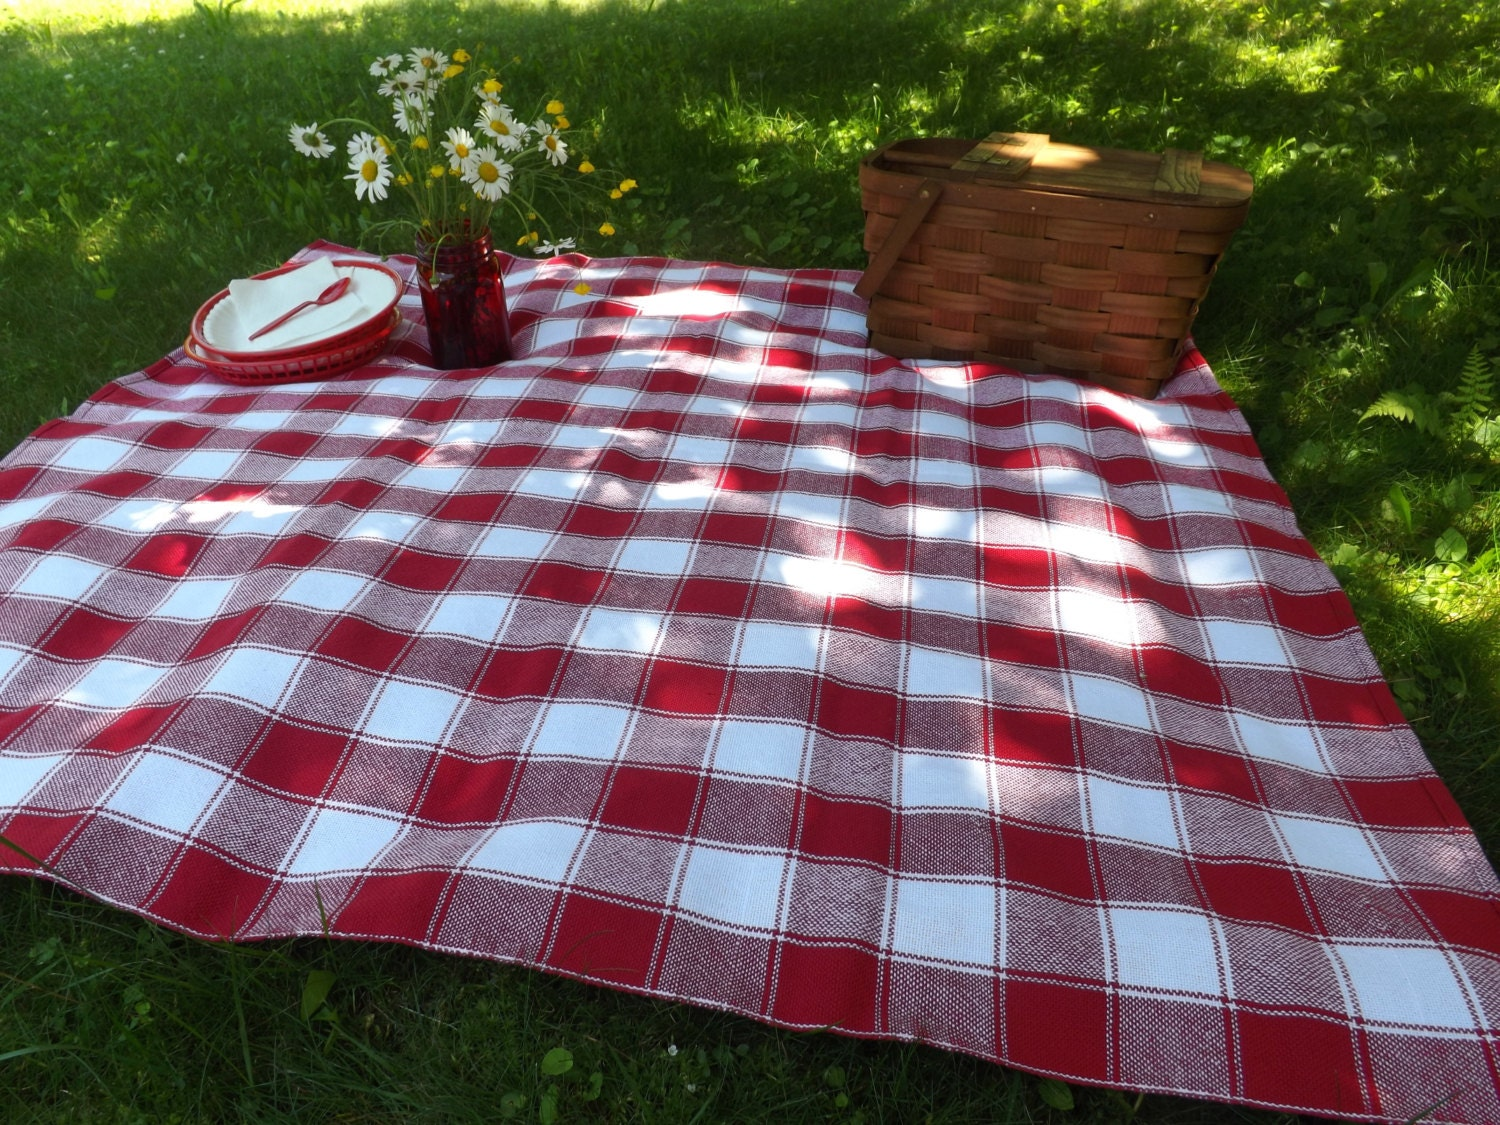 Handwoven Picnic Tablecloth Dining Table Cloth Red Amp White